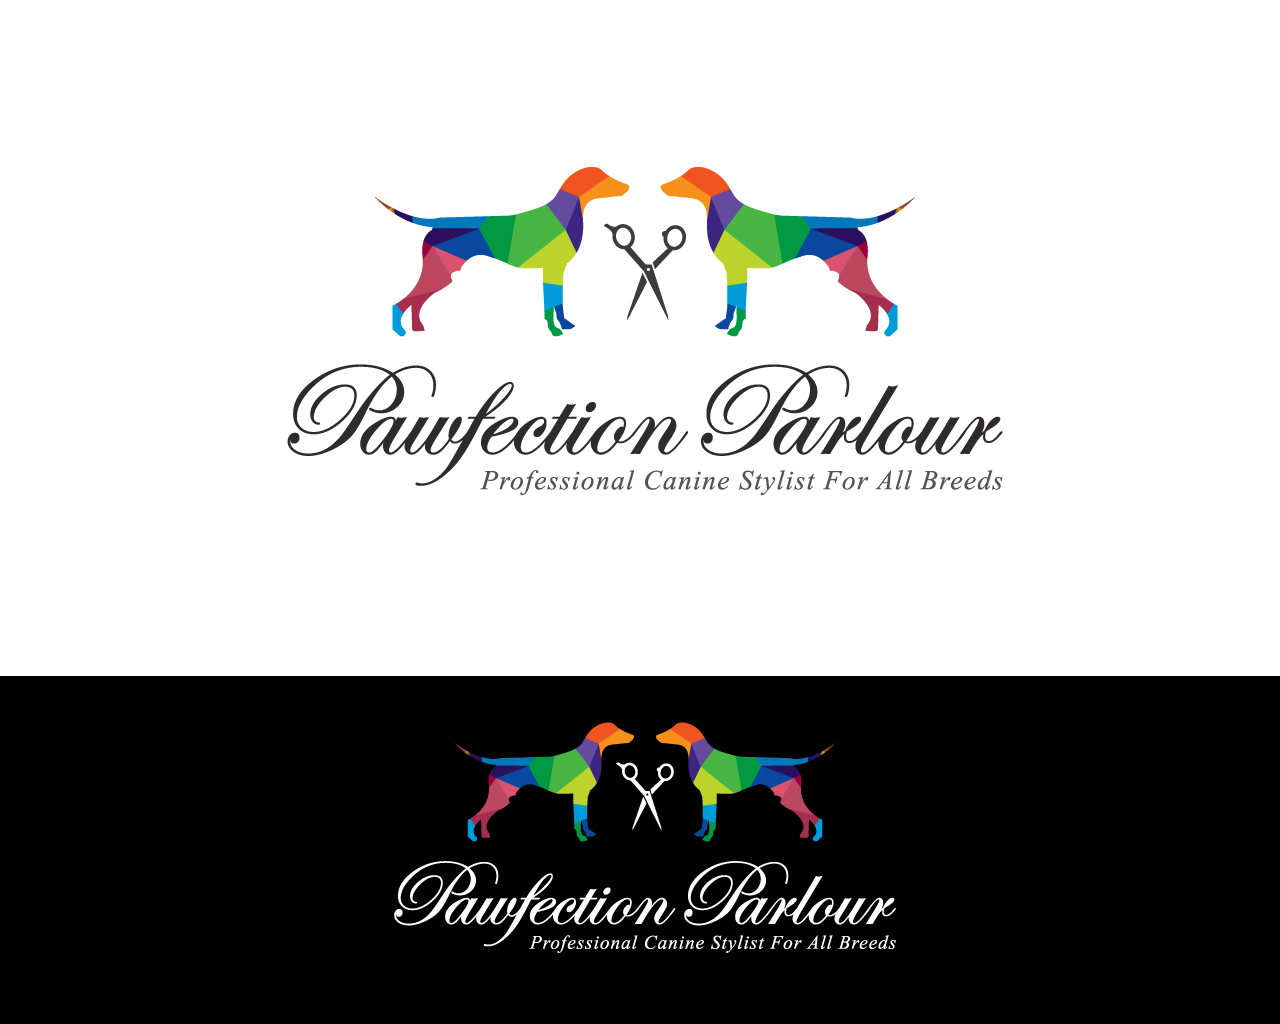 48 Elegant Modern Pet Care Logo Designs for Pawfection Parlour a ...